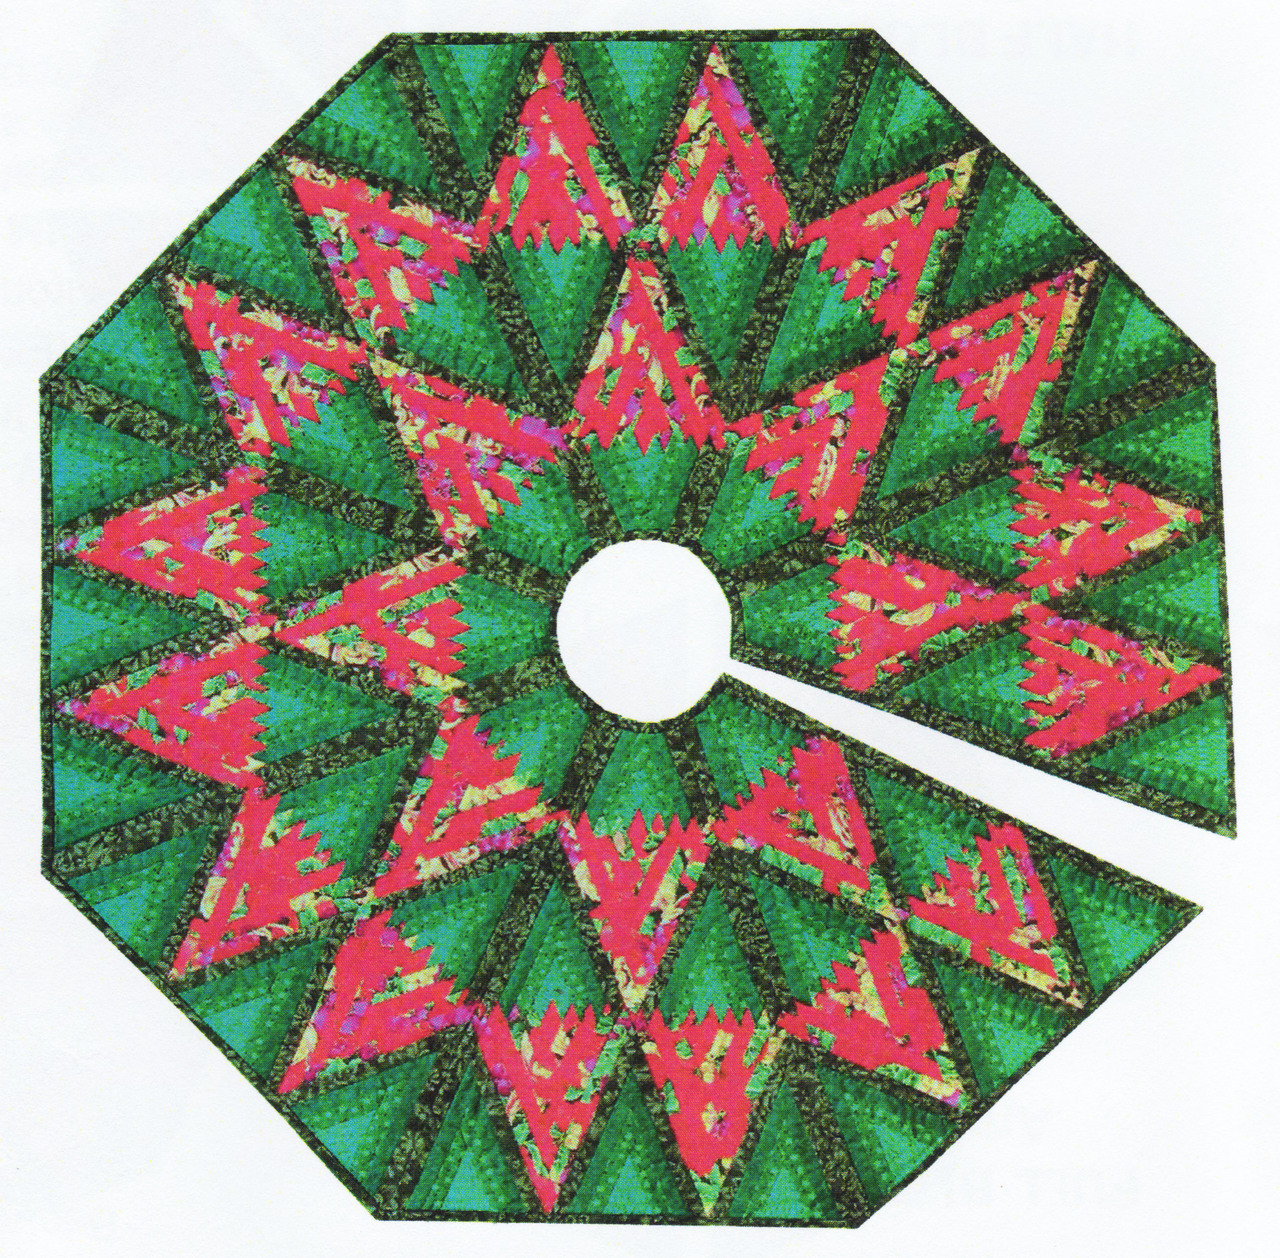 Diamond Log Cabin Tree Skirt Foundation Paper Piecing Patterns 45 1 2 X 45 1 2 Quilt Paperpiecedquilting Com